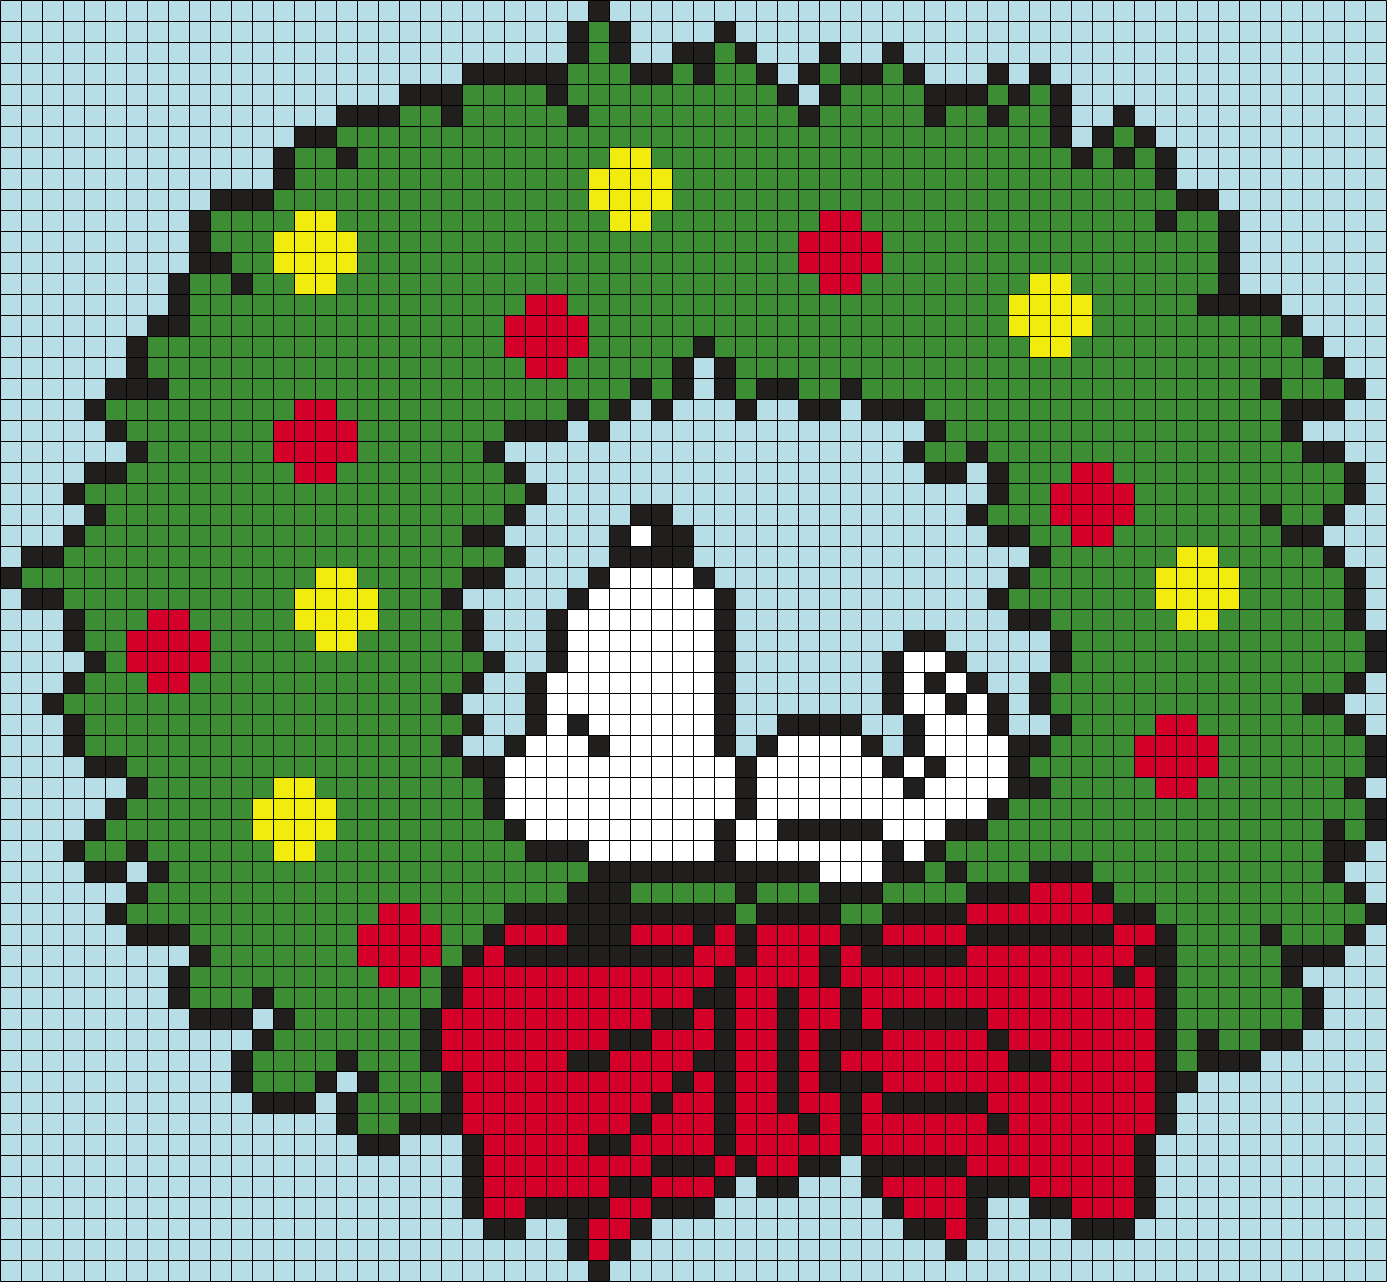 Snoopy Wreath (from Peanuts) Square Grid Perler Bead Pattern / Bead Sprite